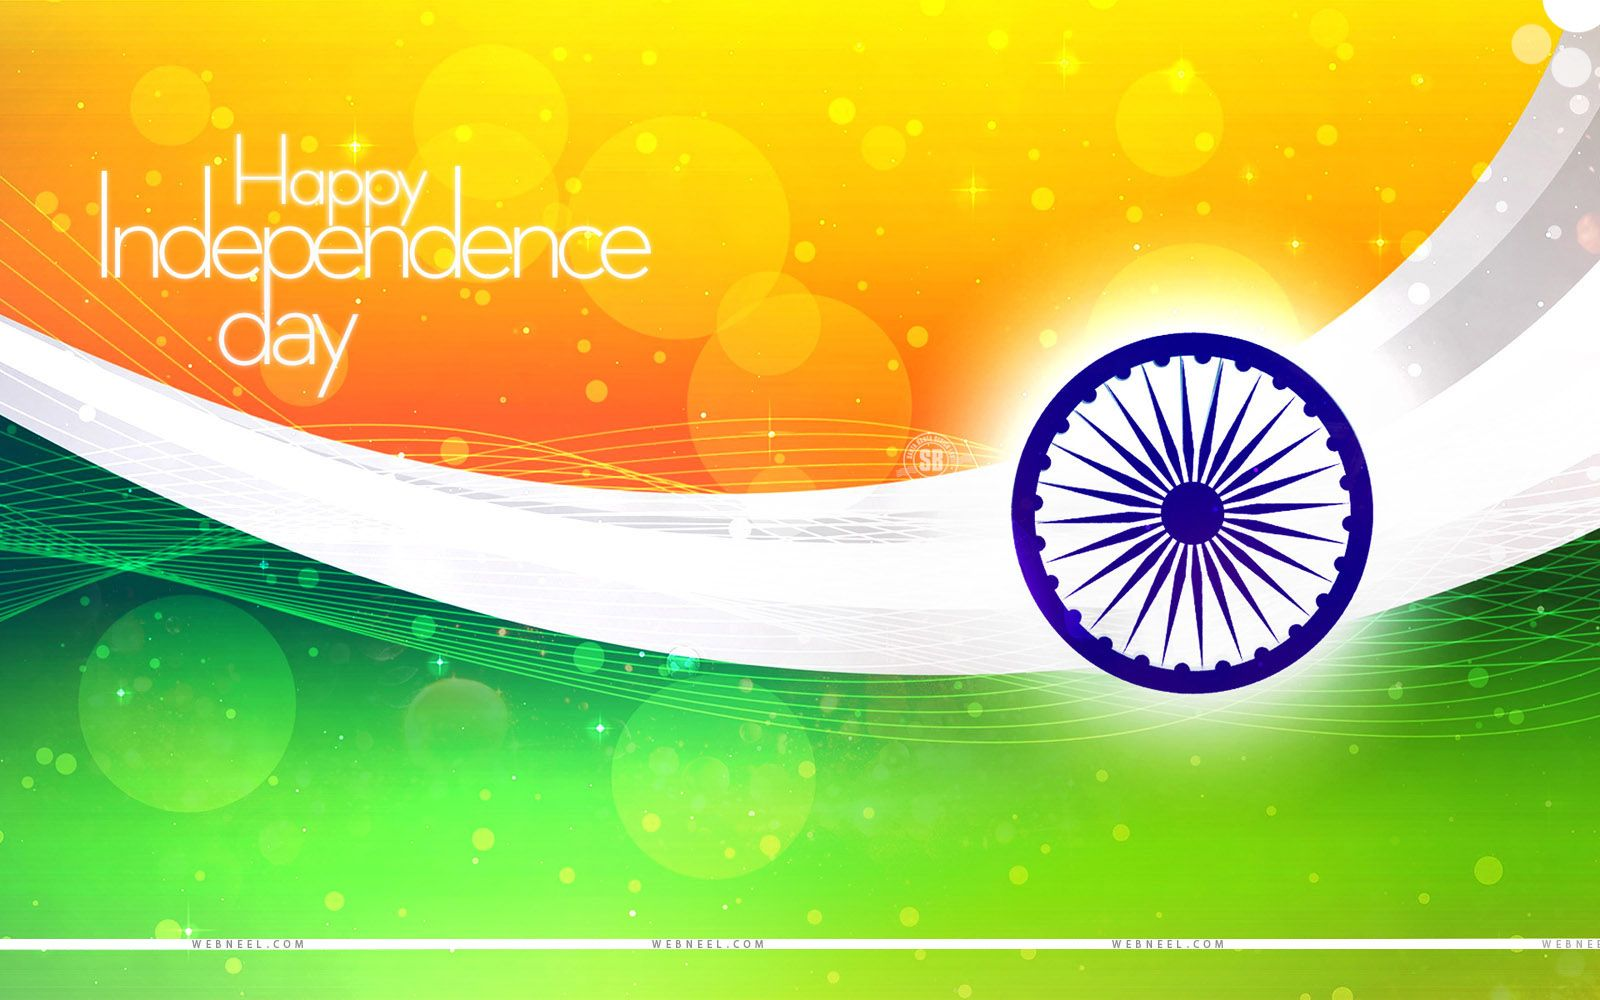 essays on indian independence India achieved independence from the shackles of the british rule on 15th august 1947 the day is celebrated annually across the country with great pomp and show.